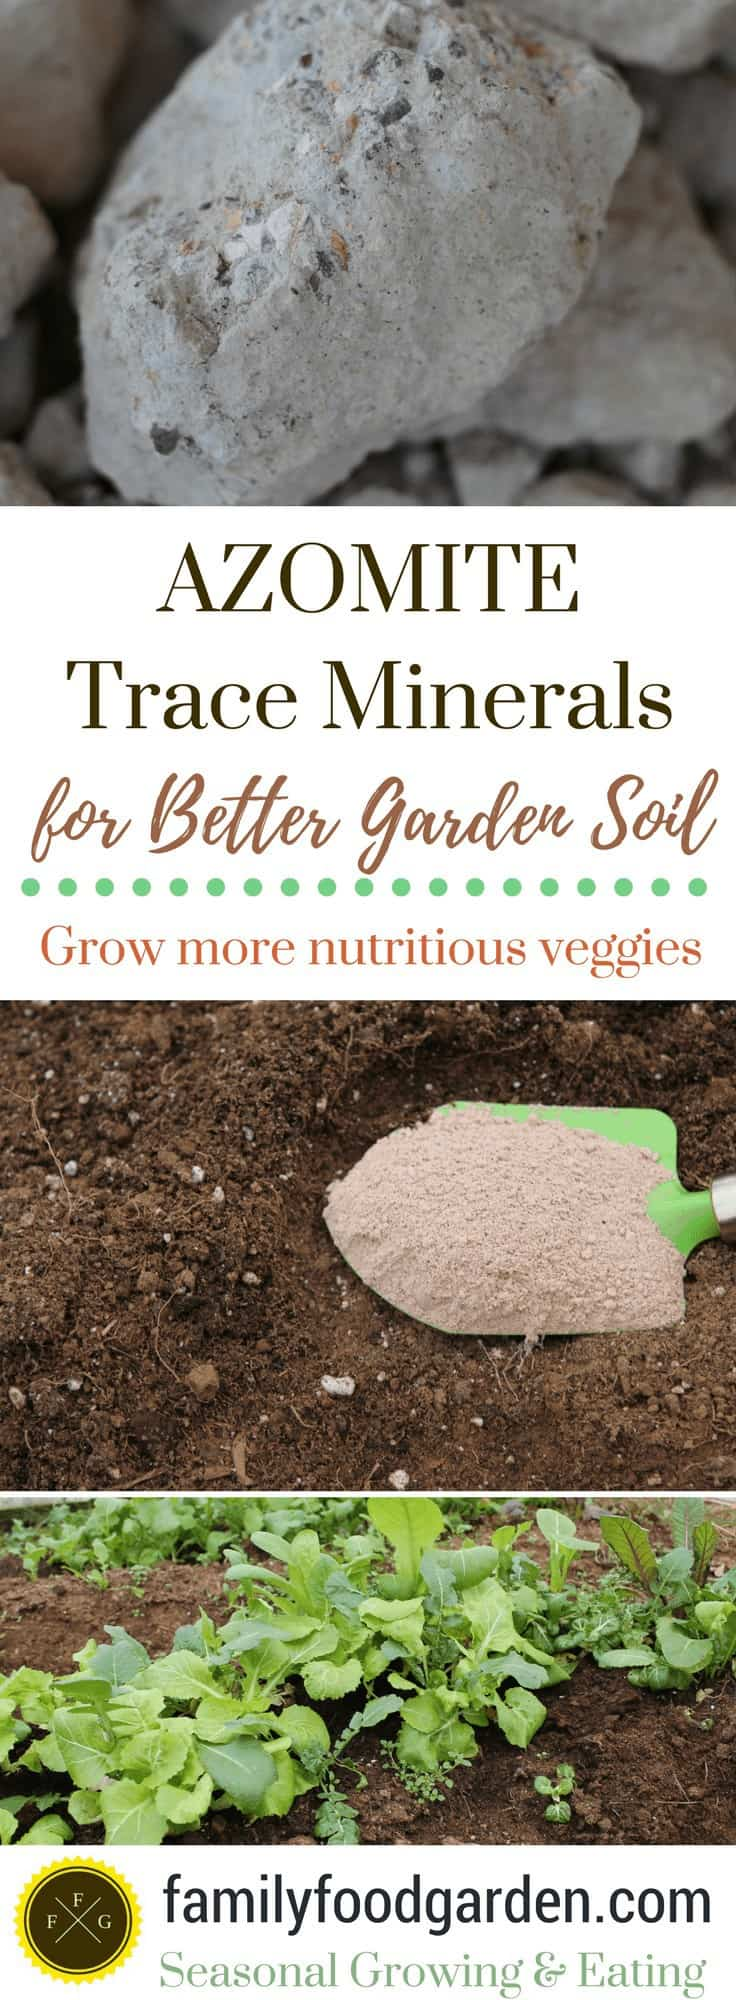 AZOMITE Trace minerals for your garden